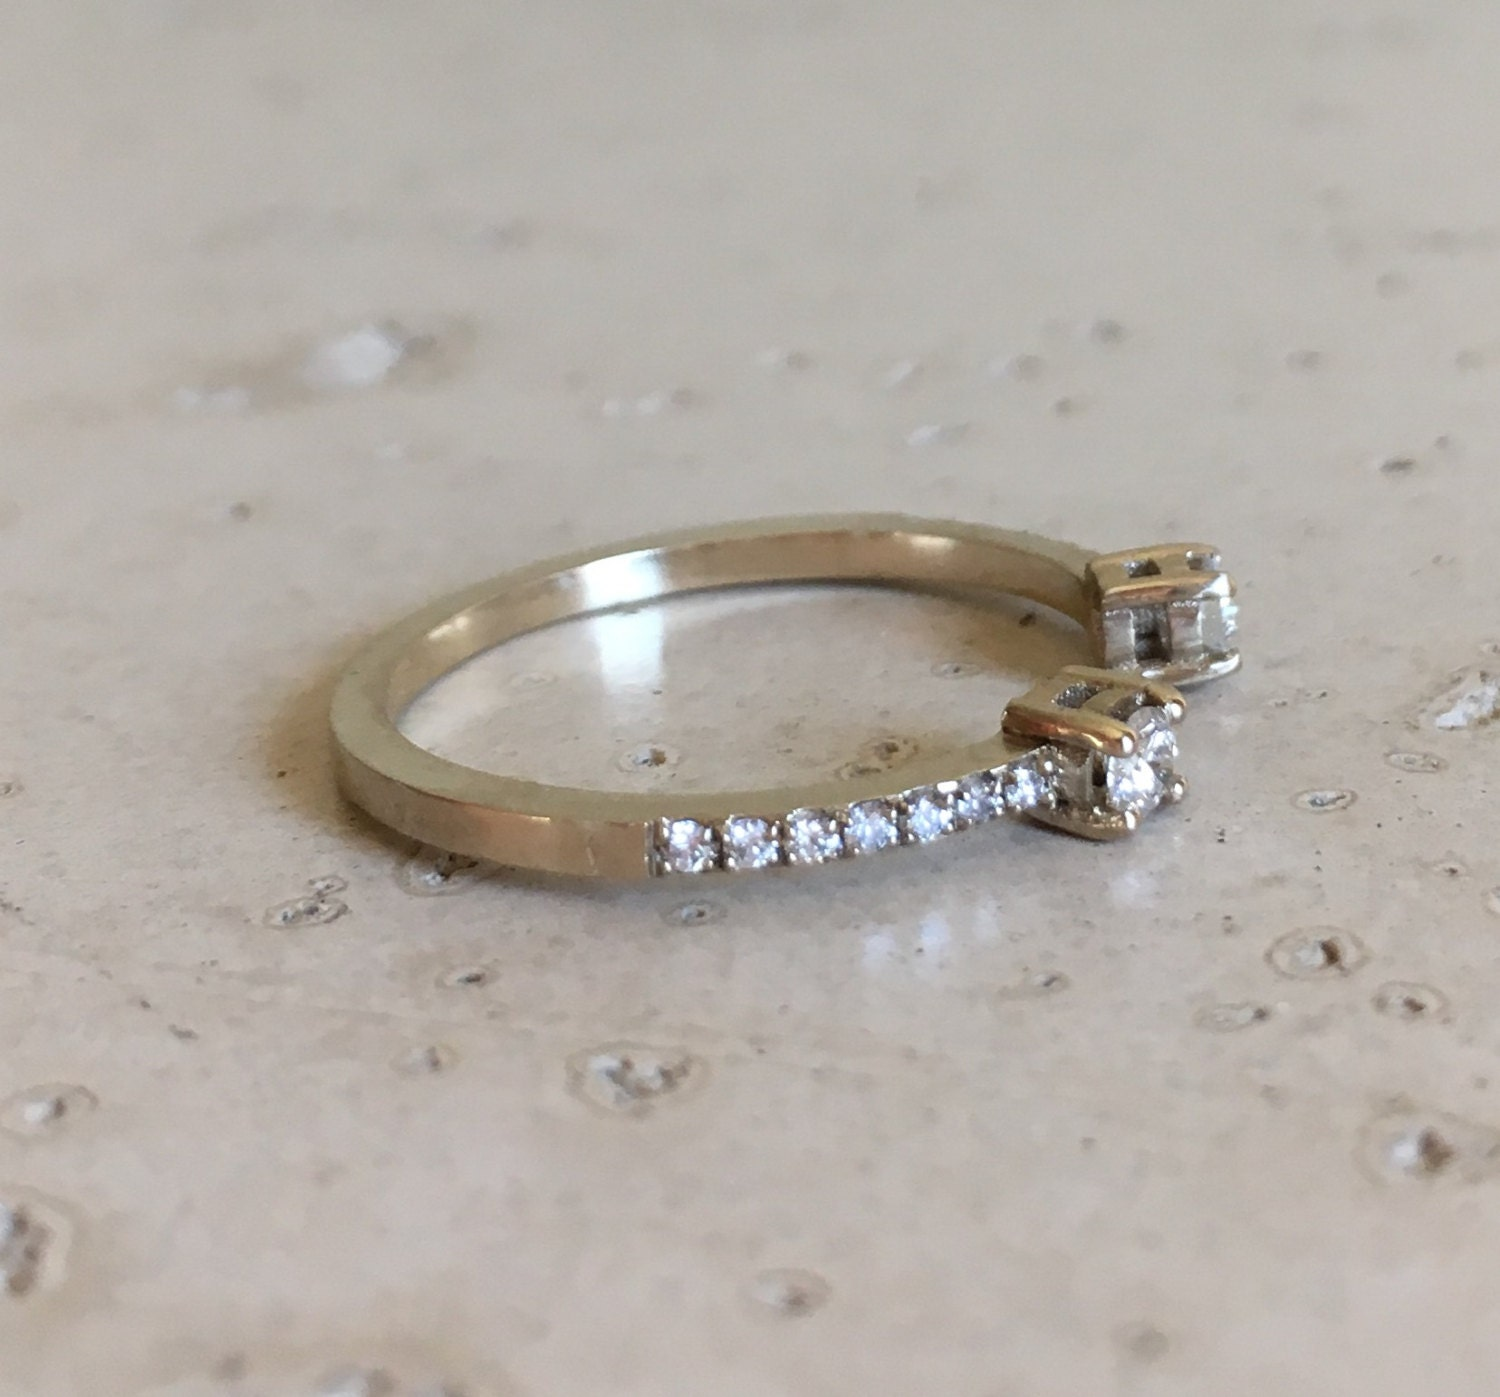 stock new bands full diamond amp rings fine wearing with wedding band jewelry of engagement ring